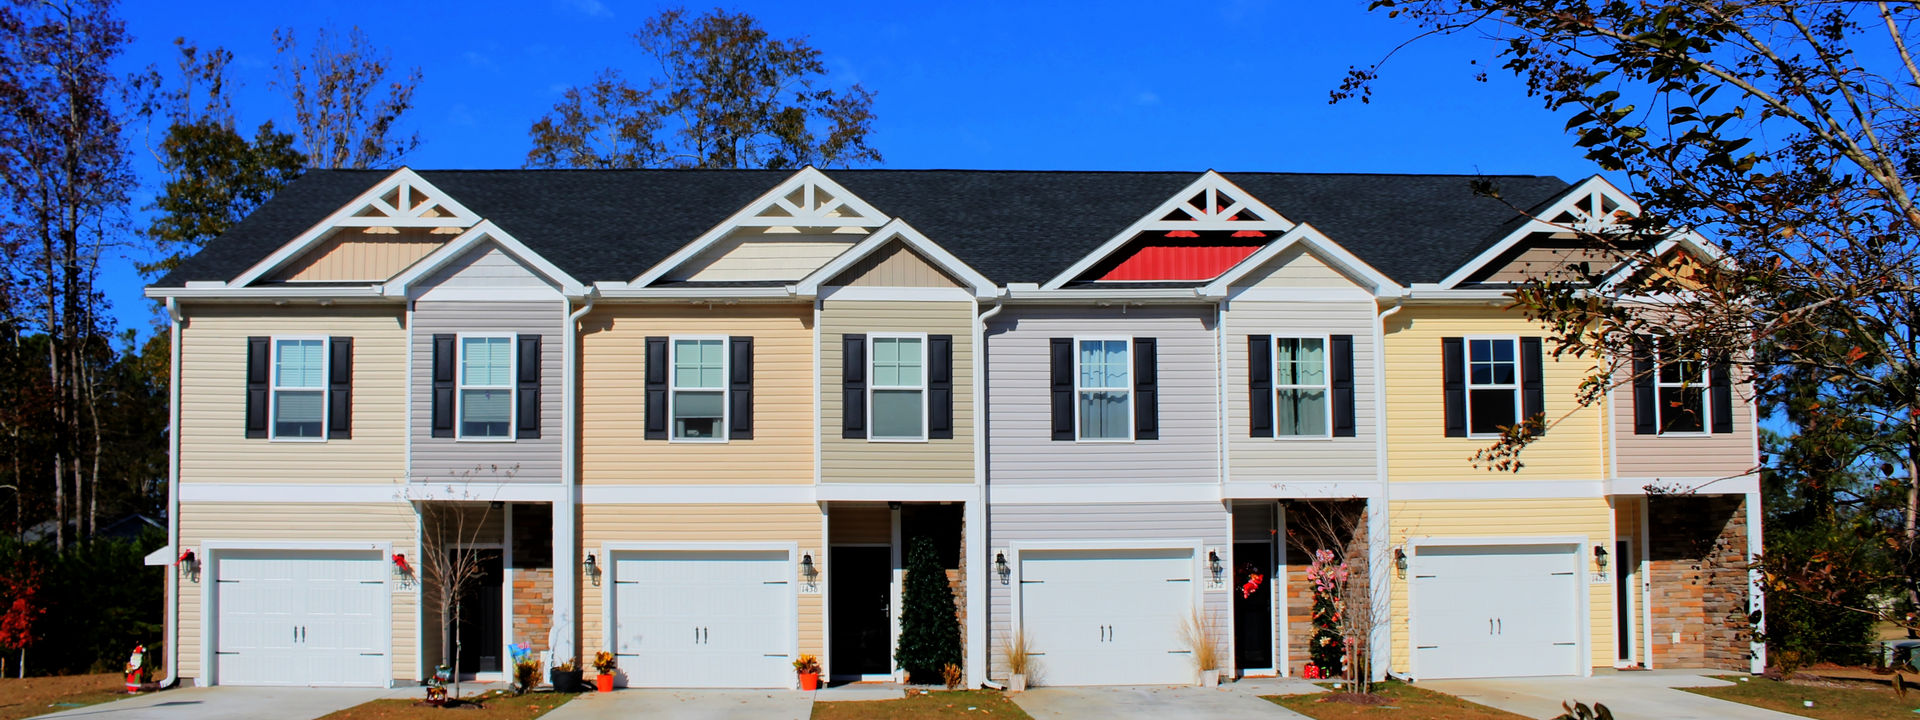 Price Reductions Myrtle Beach Condos and Townhomes